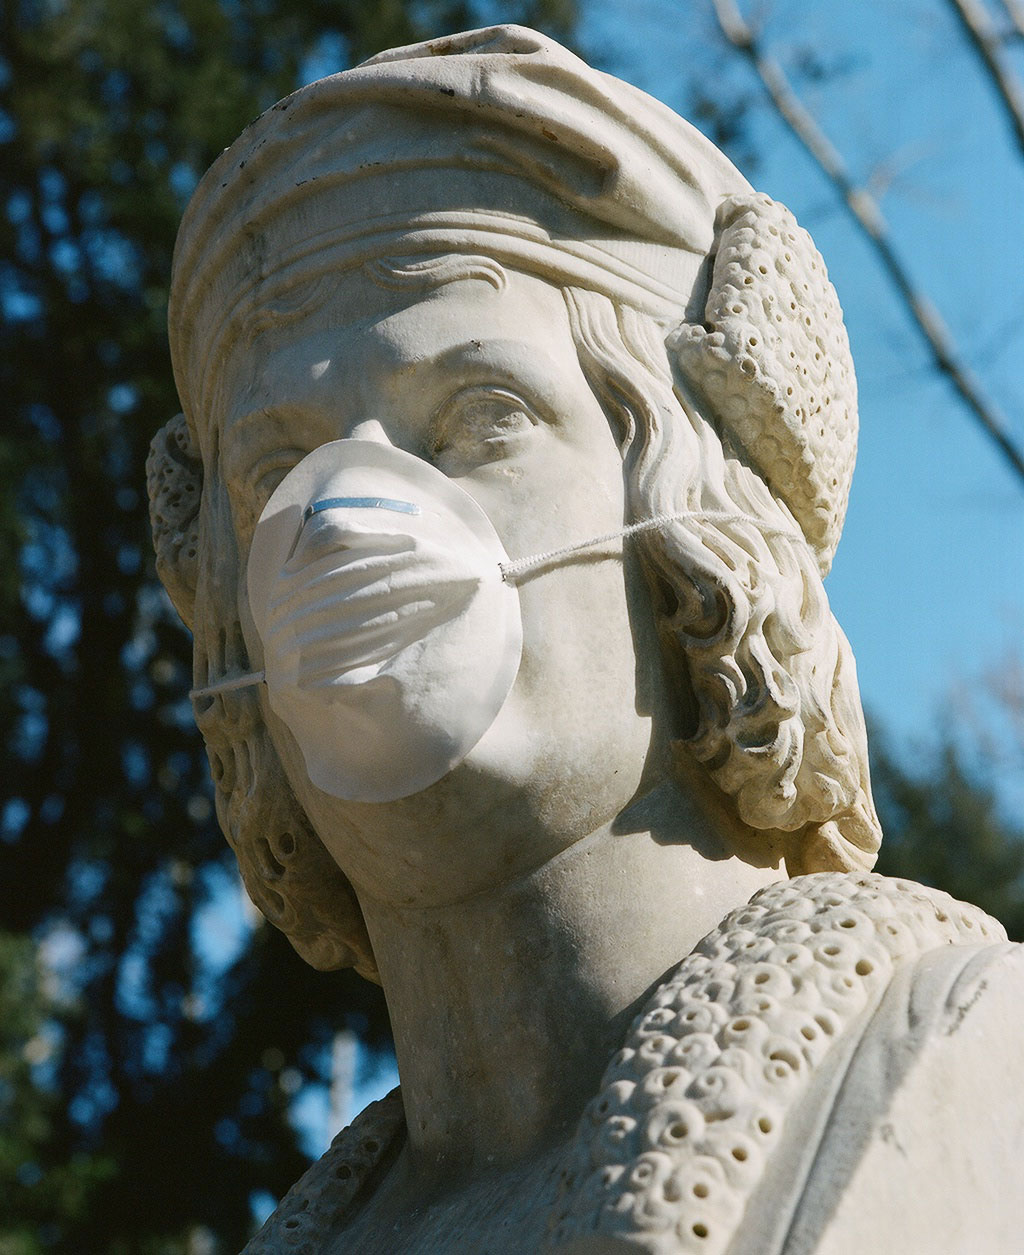 Bust of explorer Christopher Columbus (1451-1506) at Villa Borghese gardens, Rome. Photo © Federico Pestilli.